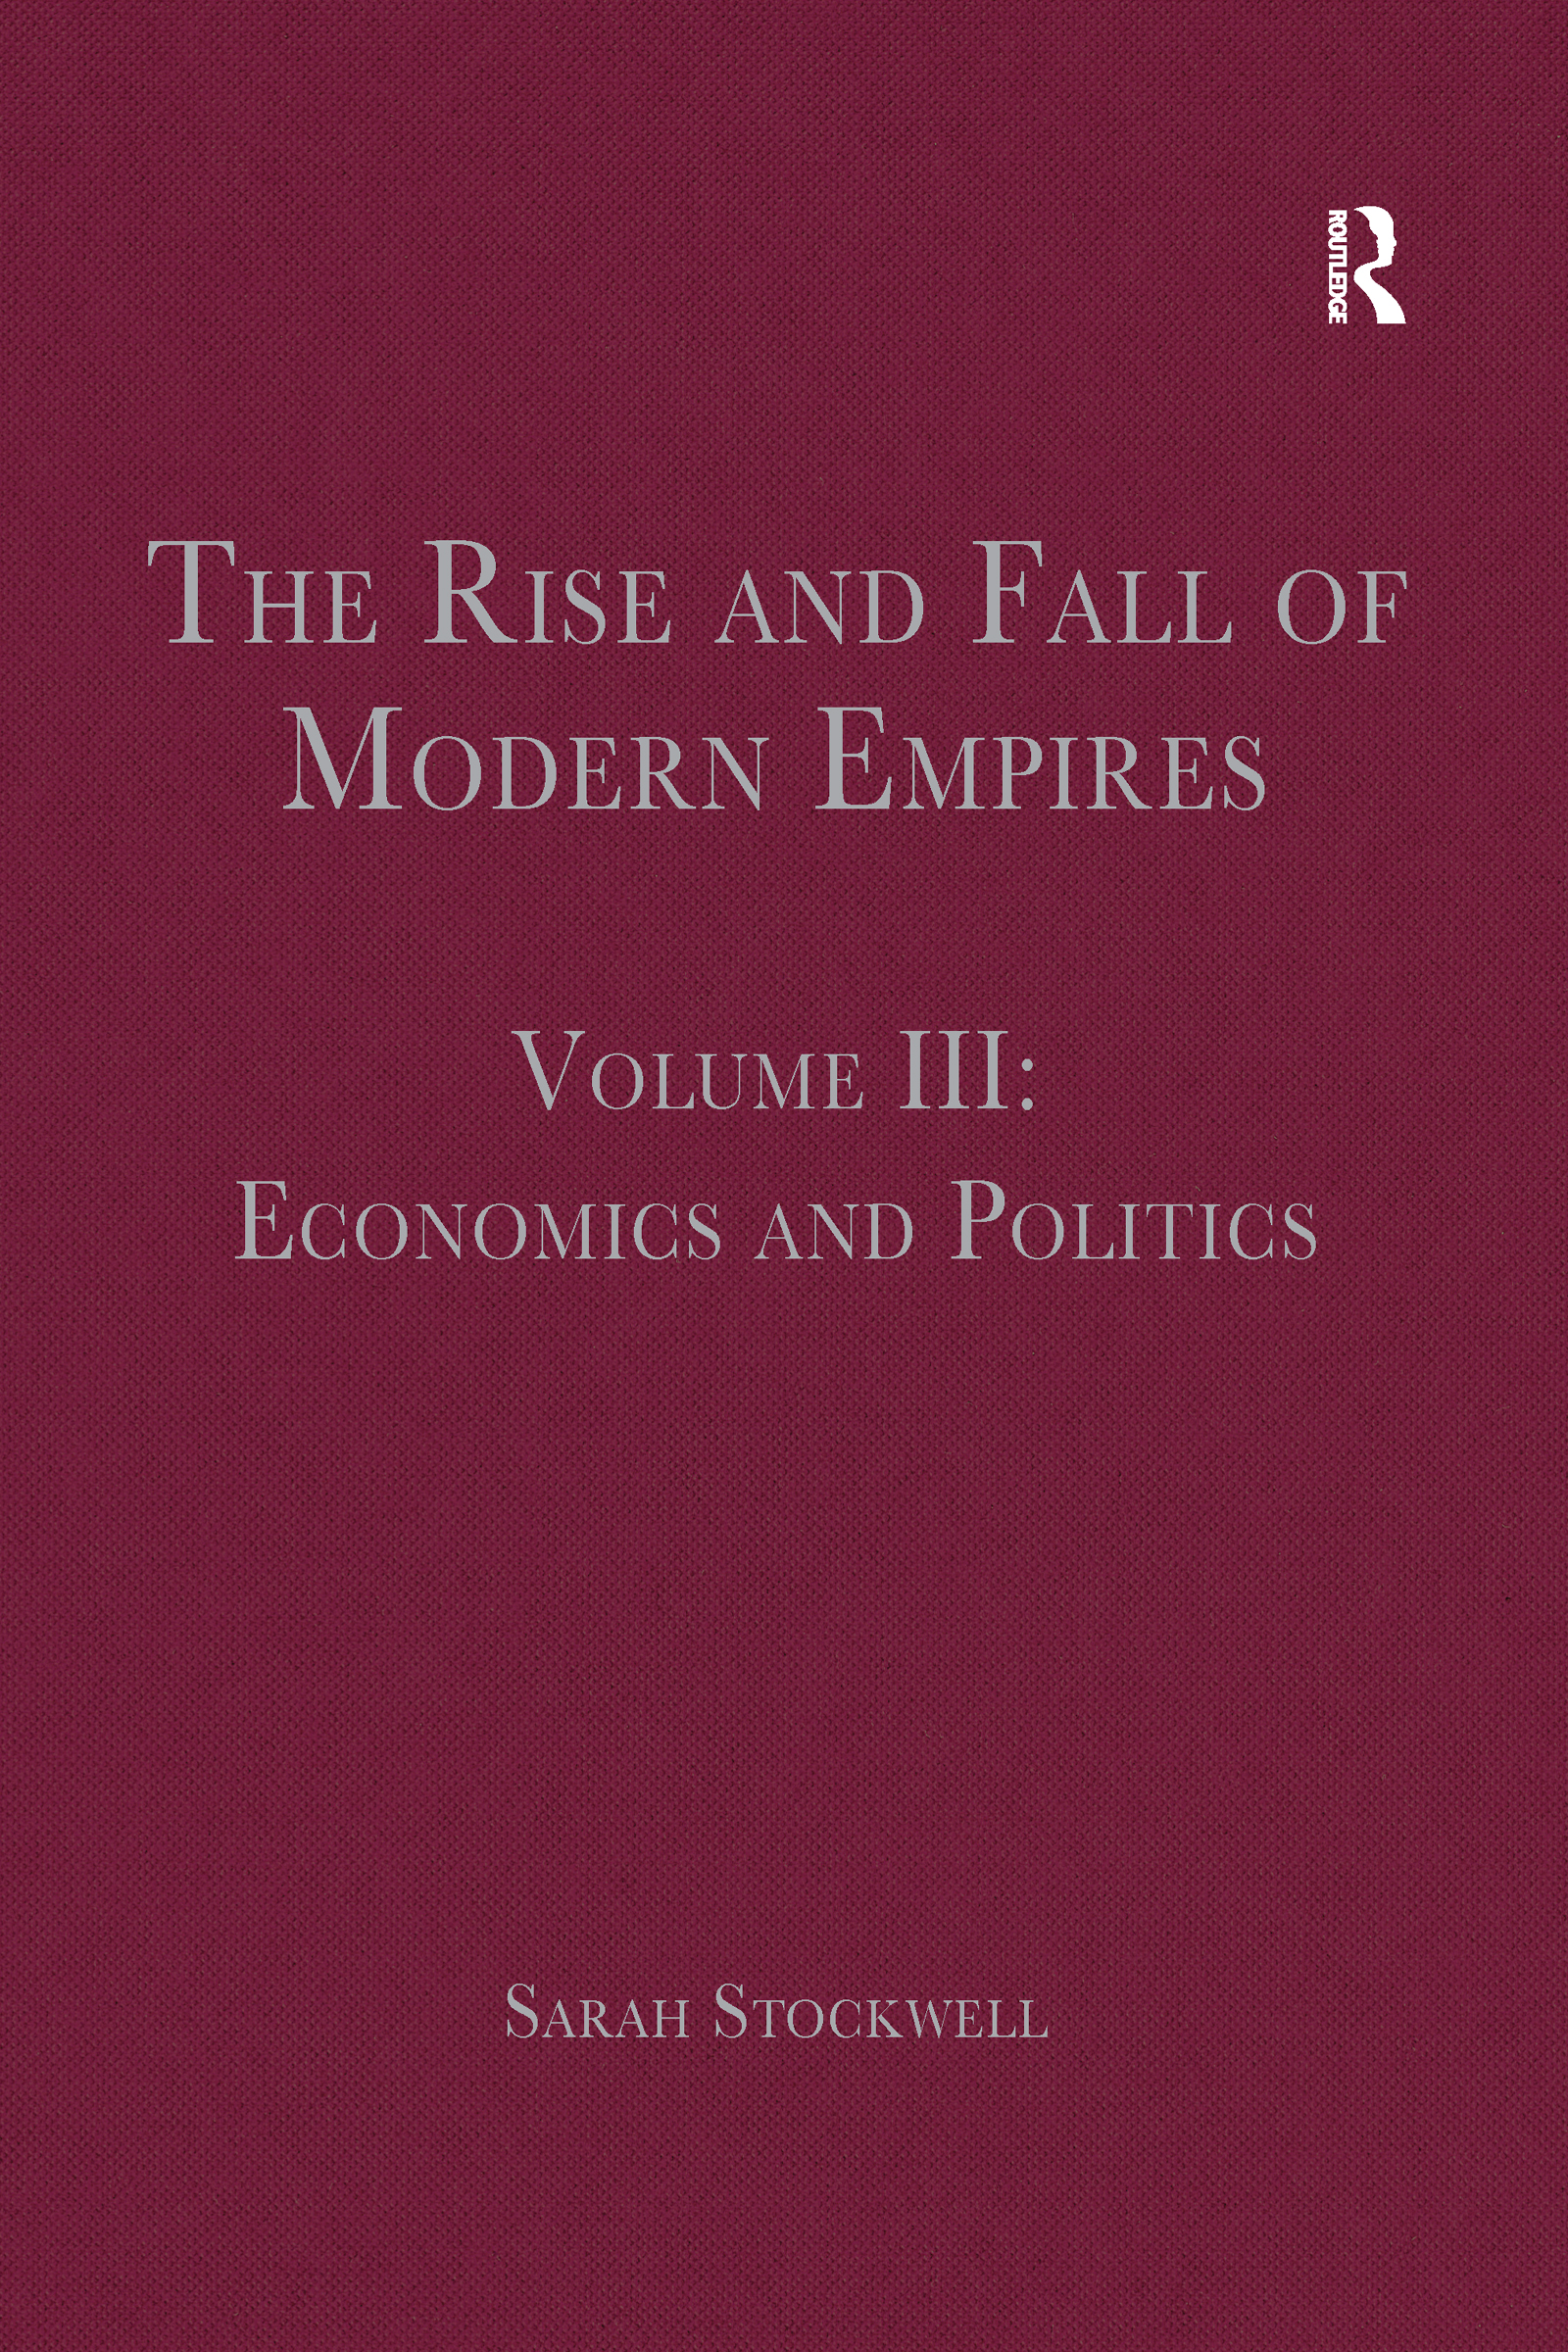 The Rise and Fall of Modern Empires, Volume III: Economics and Politics book cover